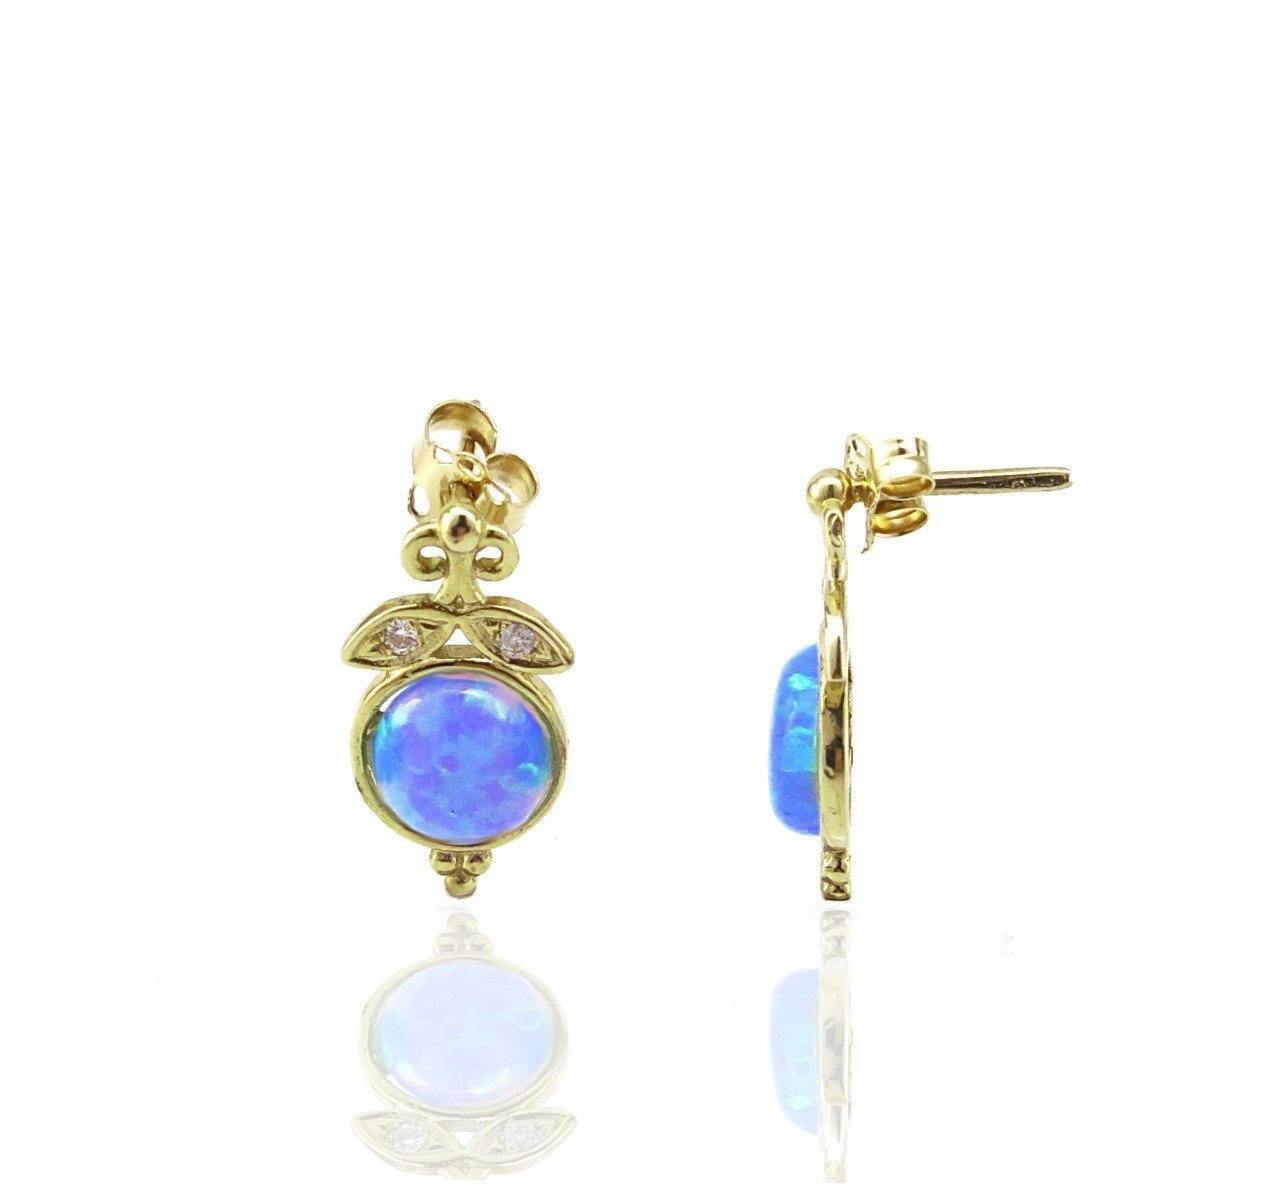 89bdcd9d1 Diamond Stud Earrings 14K Solid Gold with Blue Opal Stone AtPerrys ...